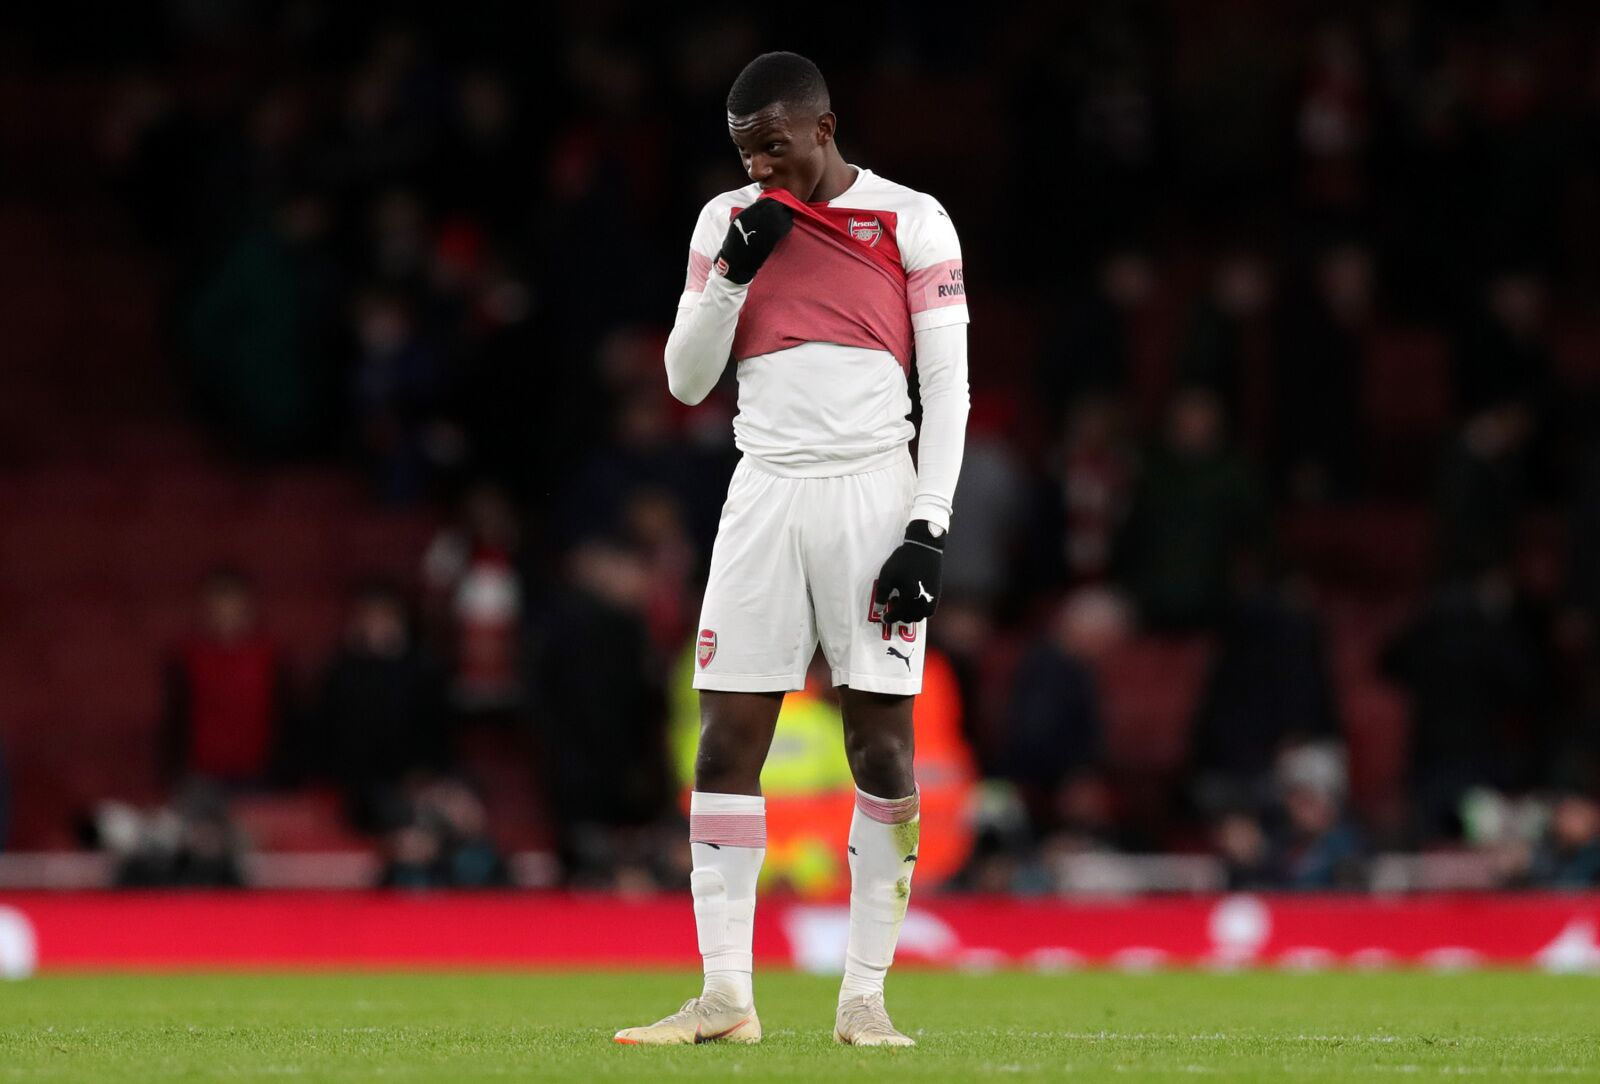 Arsenal: For Eddie Nketiah, wasted time is the biggest enemy